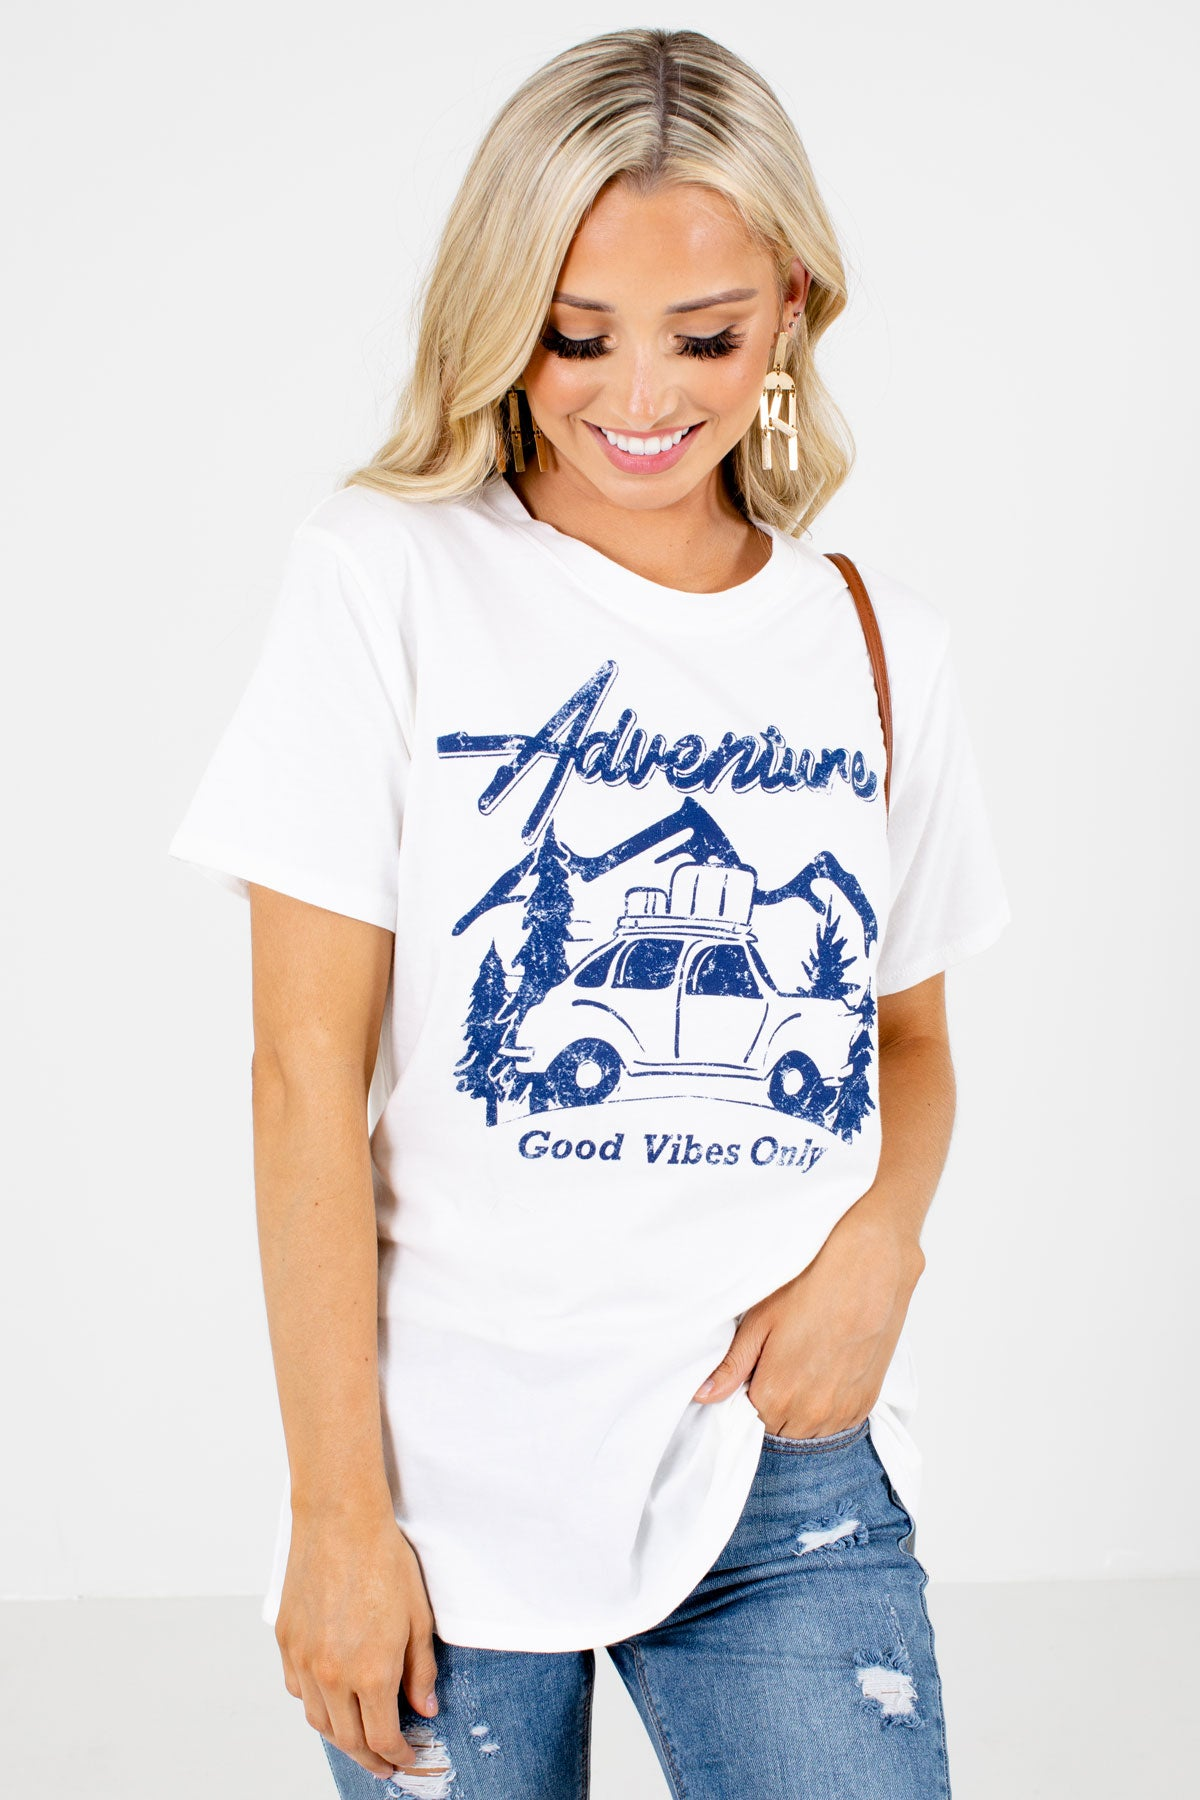 White and Blue Boutique Graphic T-Shirts for Women